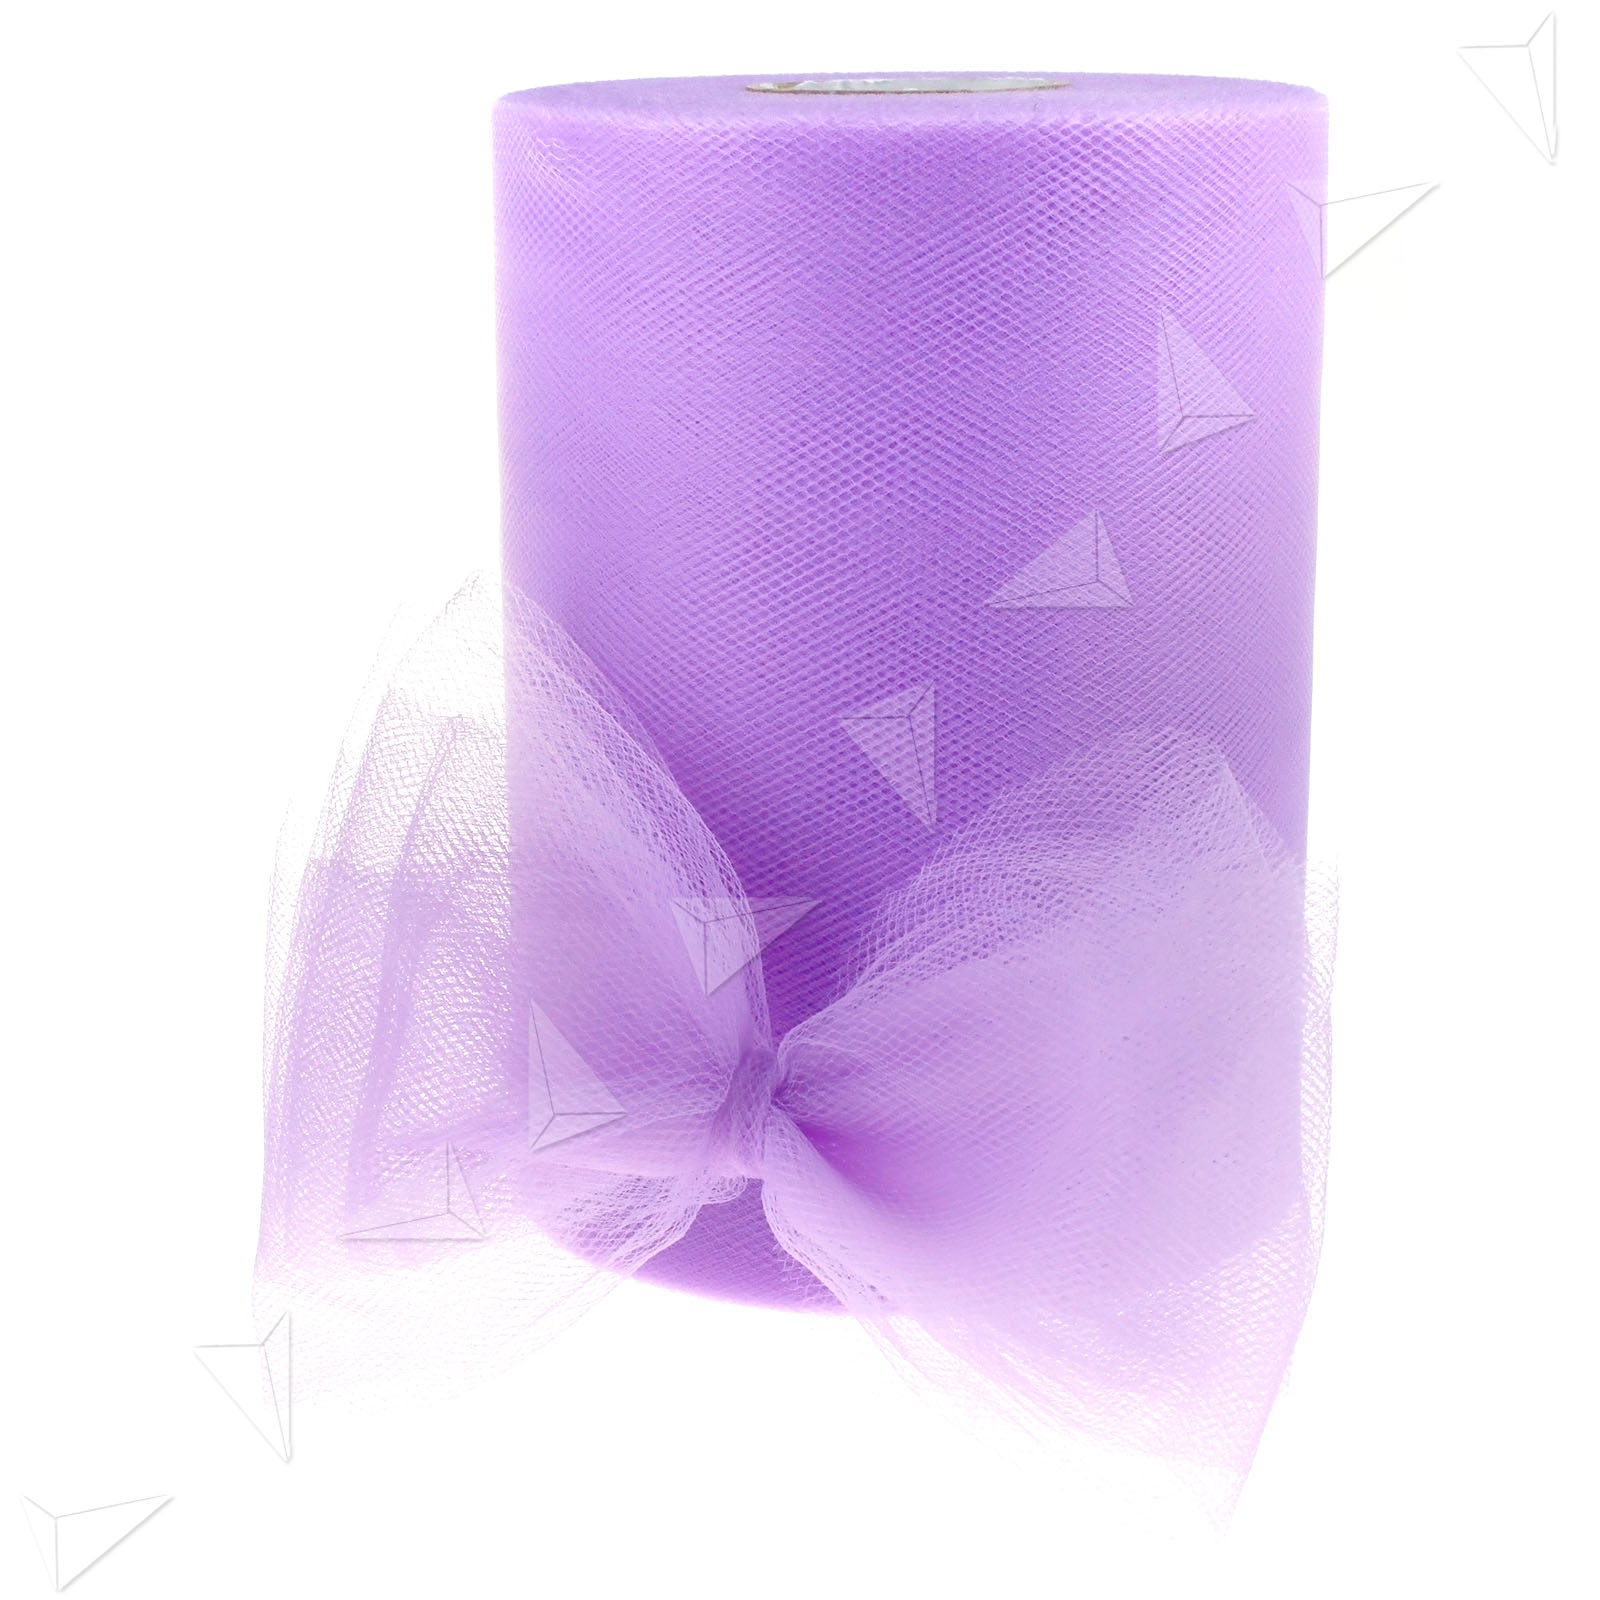 "100 Yards Tulle Wedding Backdrop Wedding Decoration 15cm: 6"" Purple TULLE FABRIC SPOOL ROLL TULLE 6"" X 100 YARDS"